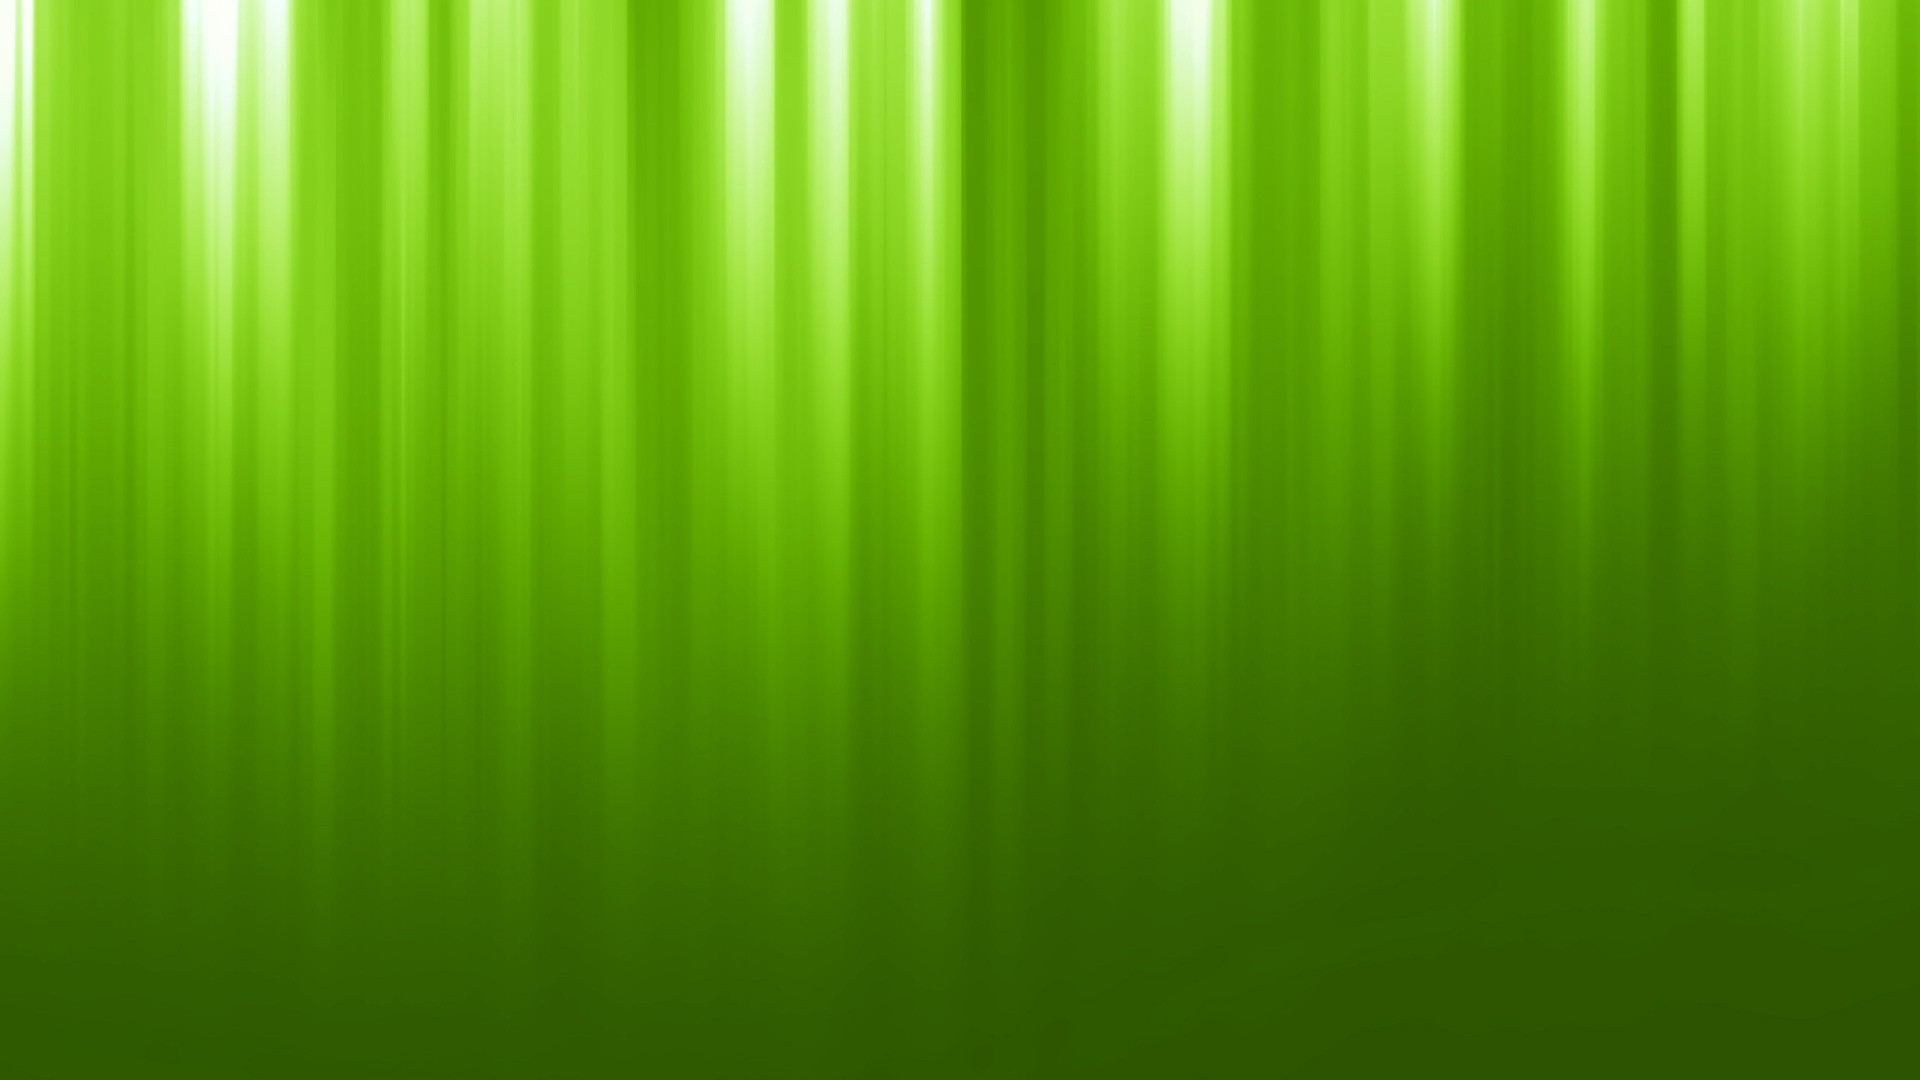 Lime Green Desktop Wallpaper